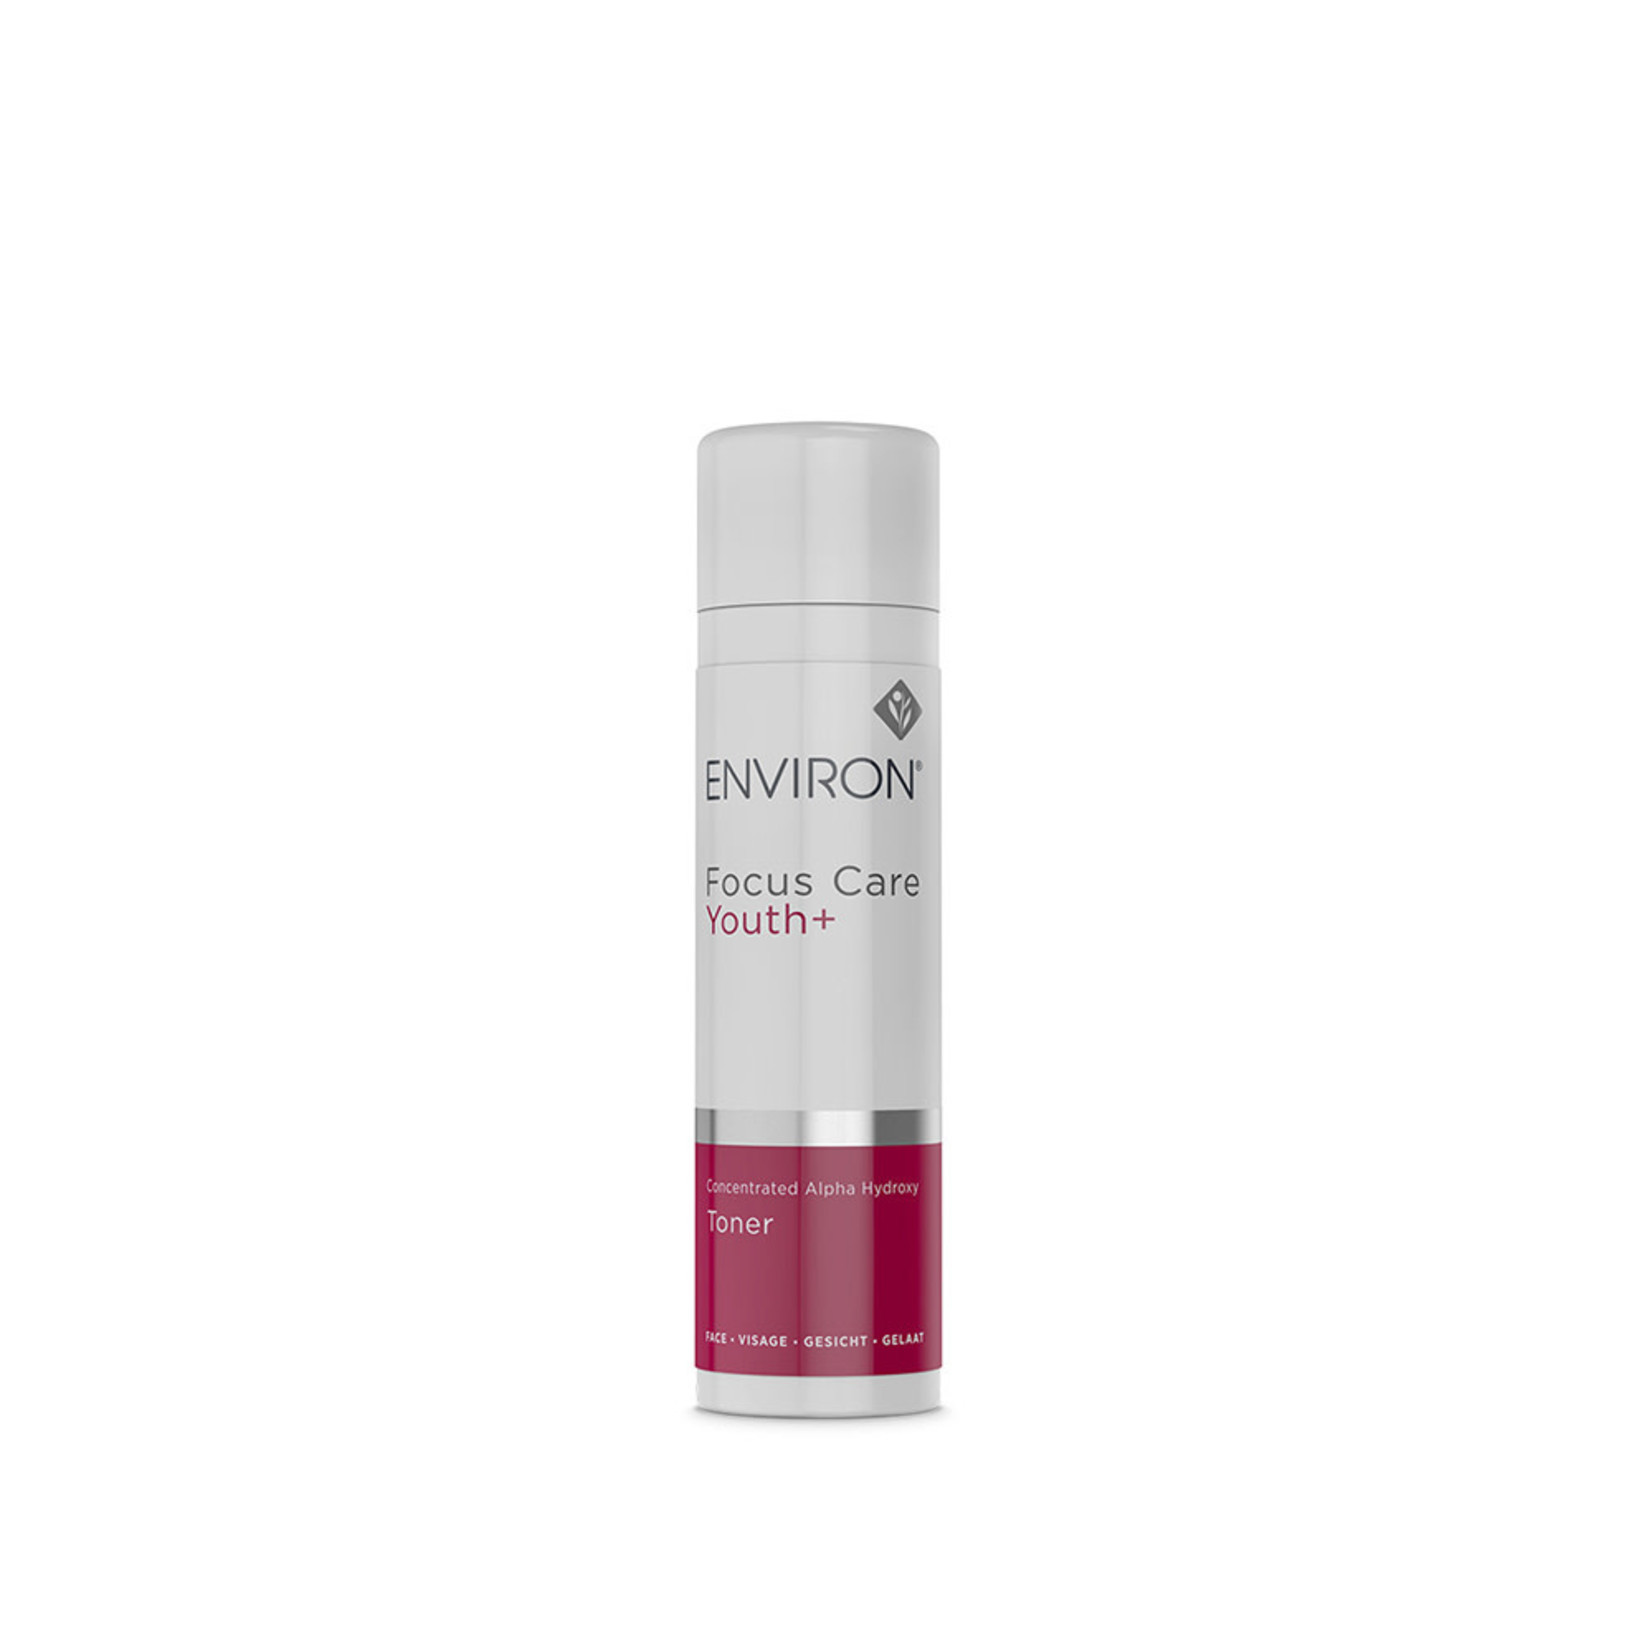 Environ Concentrated Alpha hydroxy toner 200ml